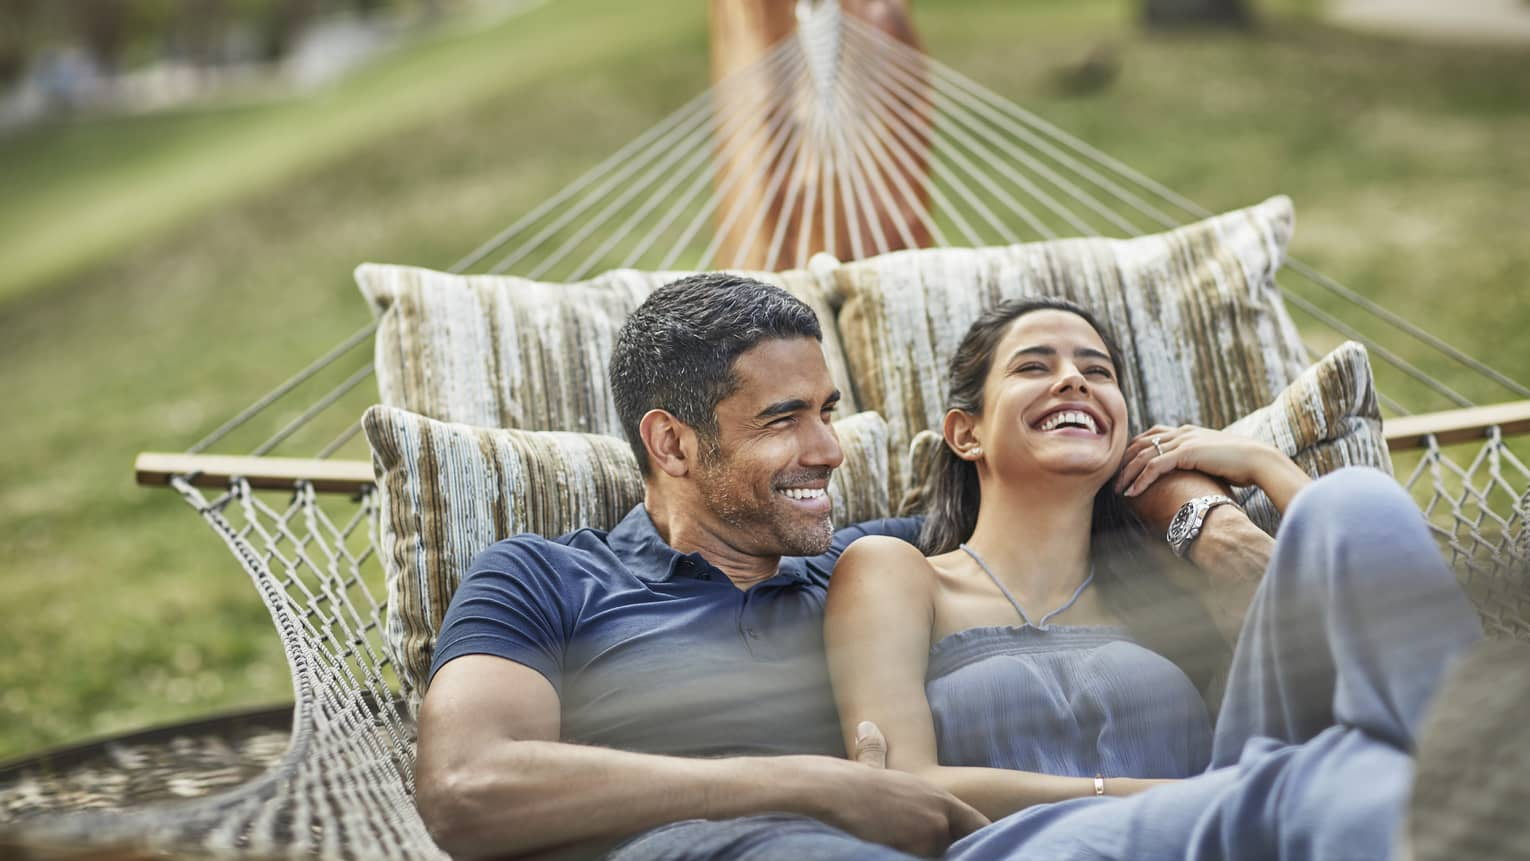 Smiling couple relaxes in hammock on lawn